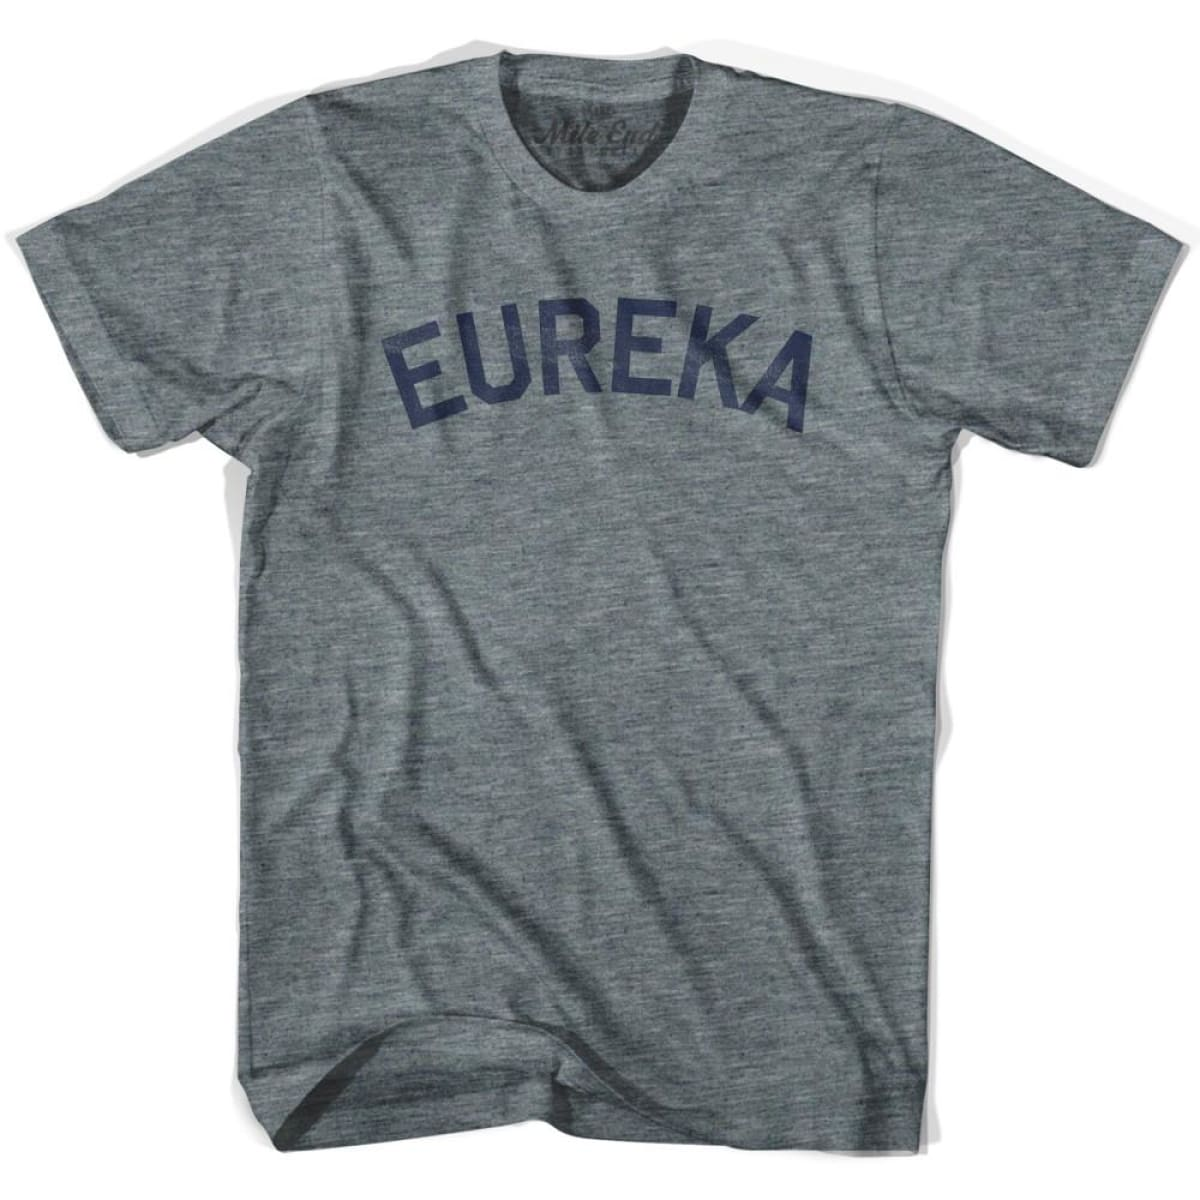 Eureka City Vintage T-shirt - Athletic Grey / Adult X-Small - Mile End City